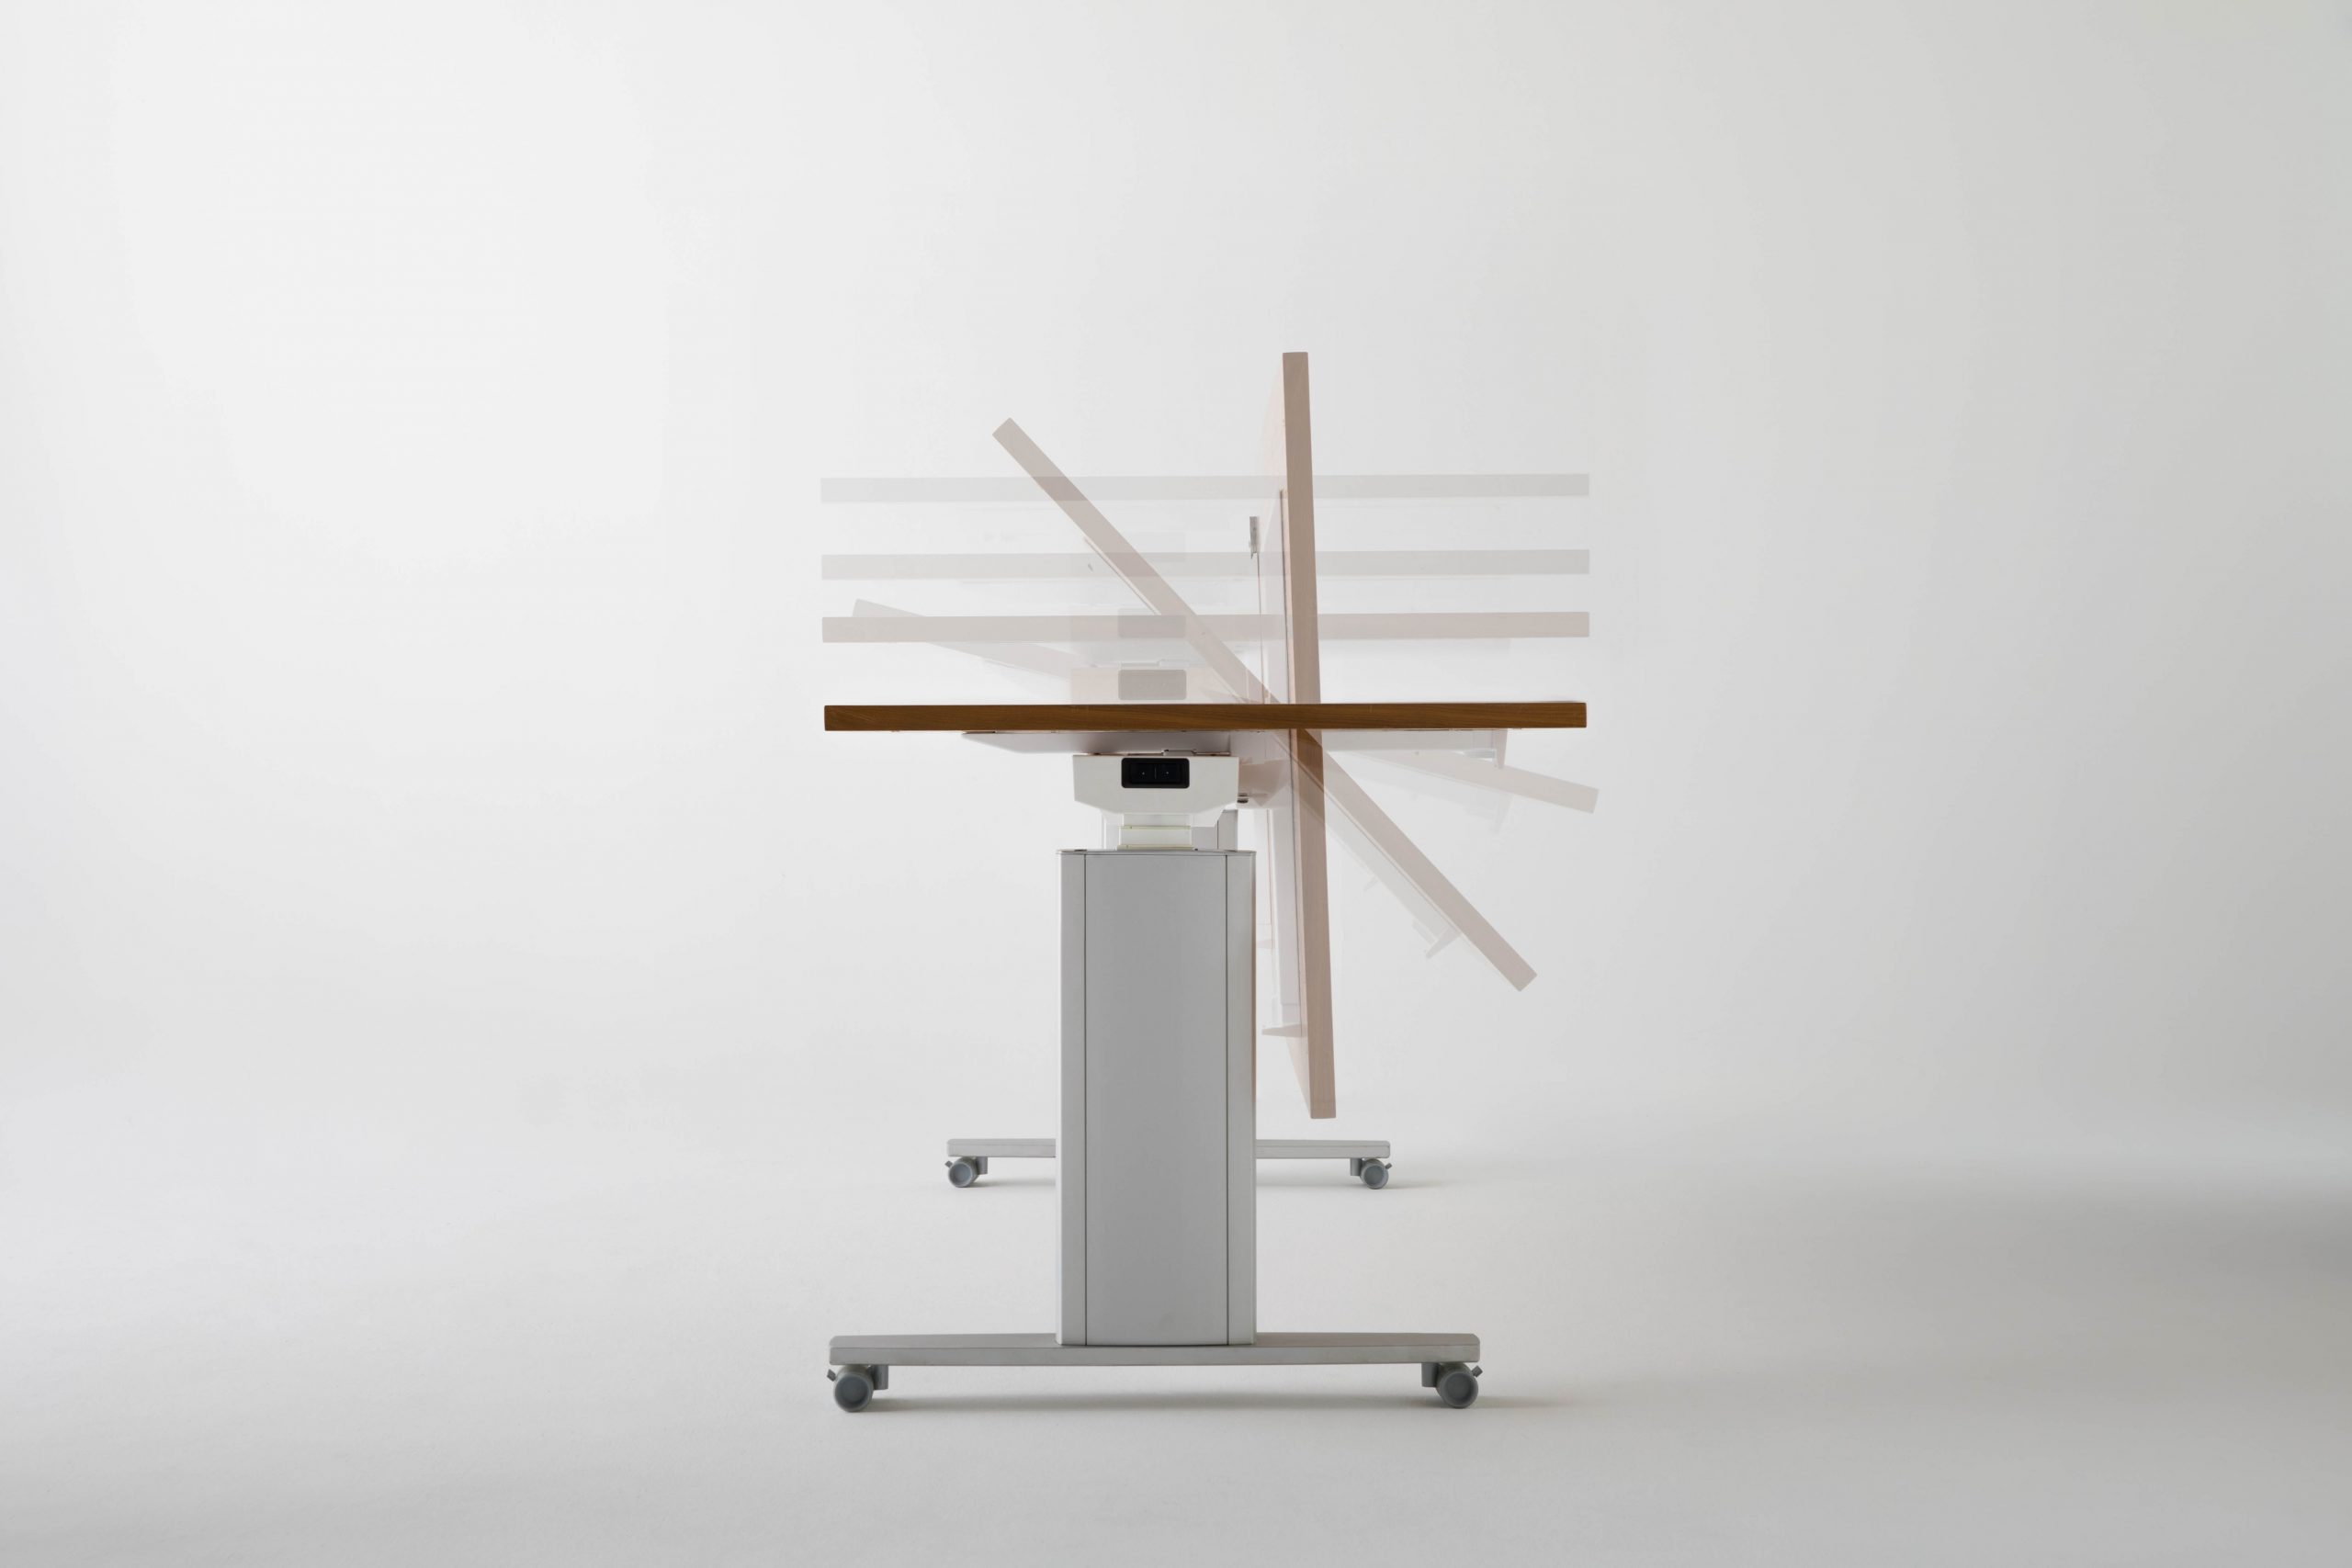 Vox Height Adjustable Table Nienkmper Archello pertaining to size 6474 X 4316